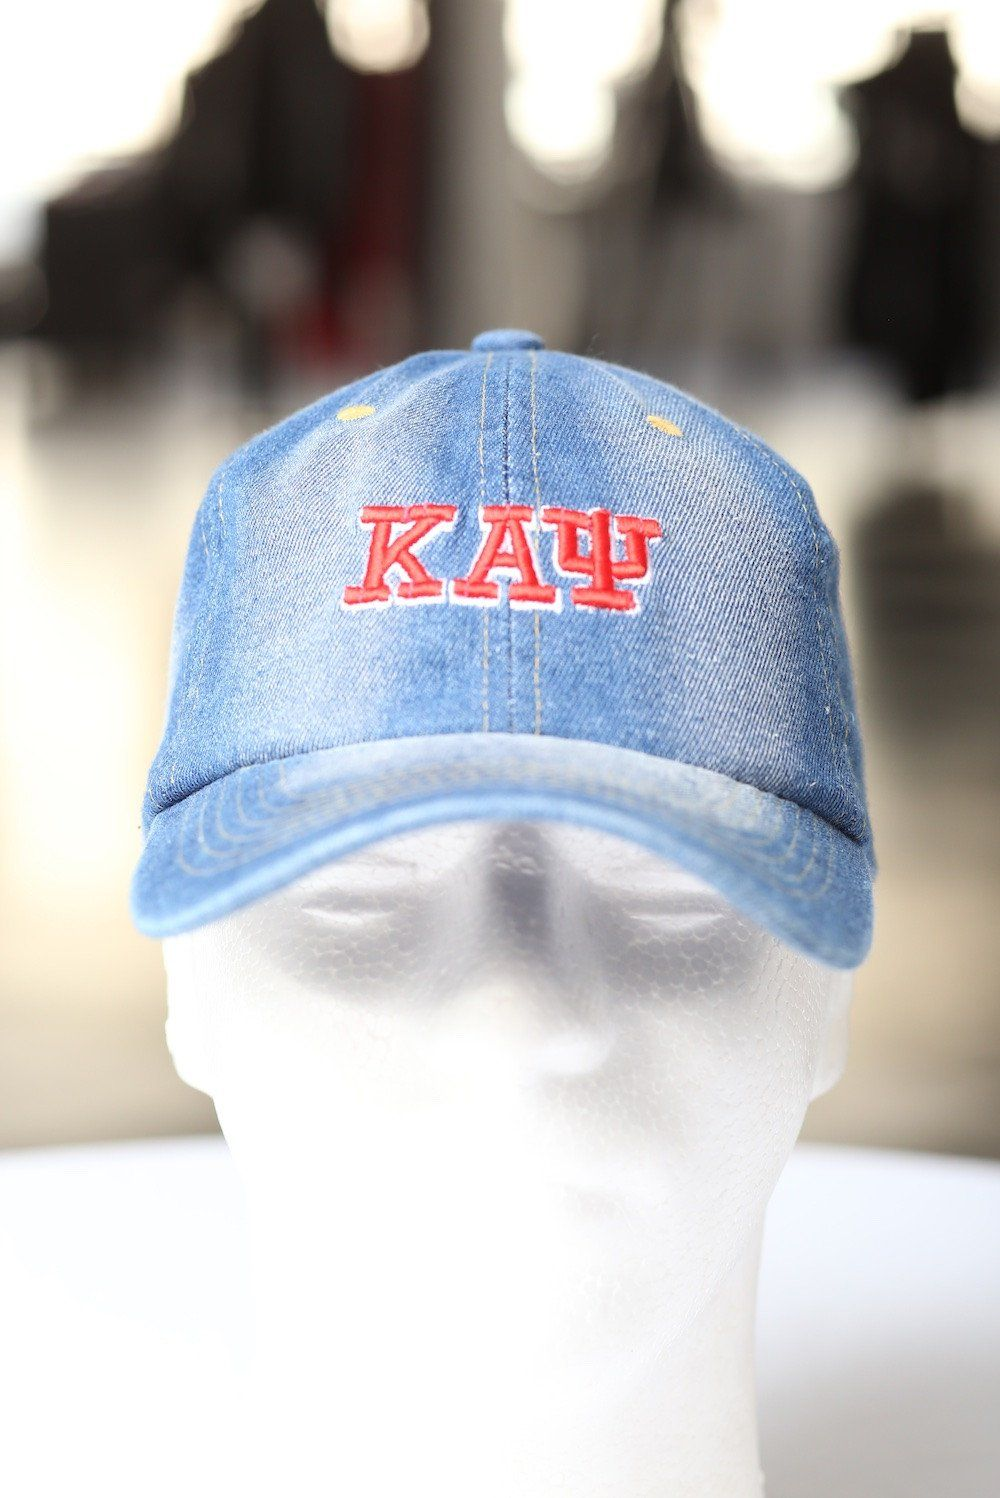 7f64d66dc631e My ΚΑΨ Jeans polo dad hat